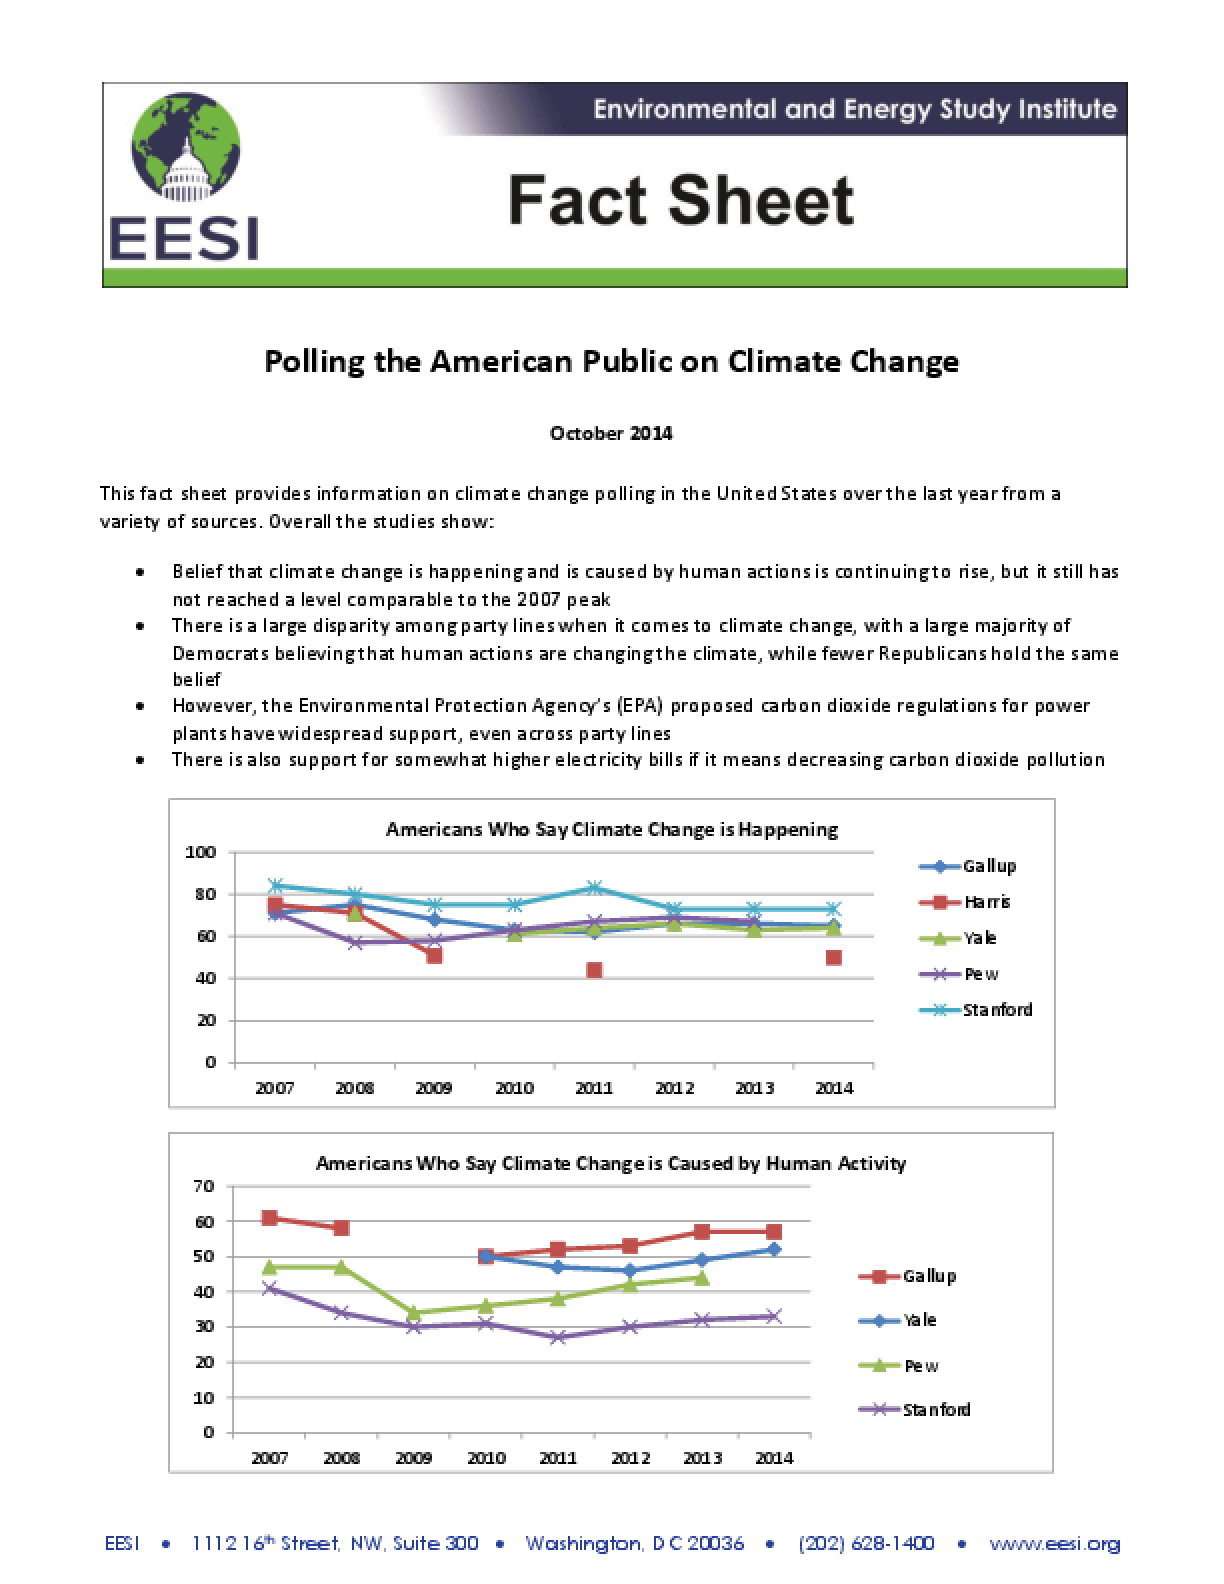 Fact Sheet: Polling the American Public on Climate Change (2014)